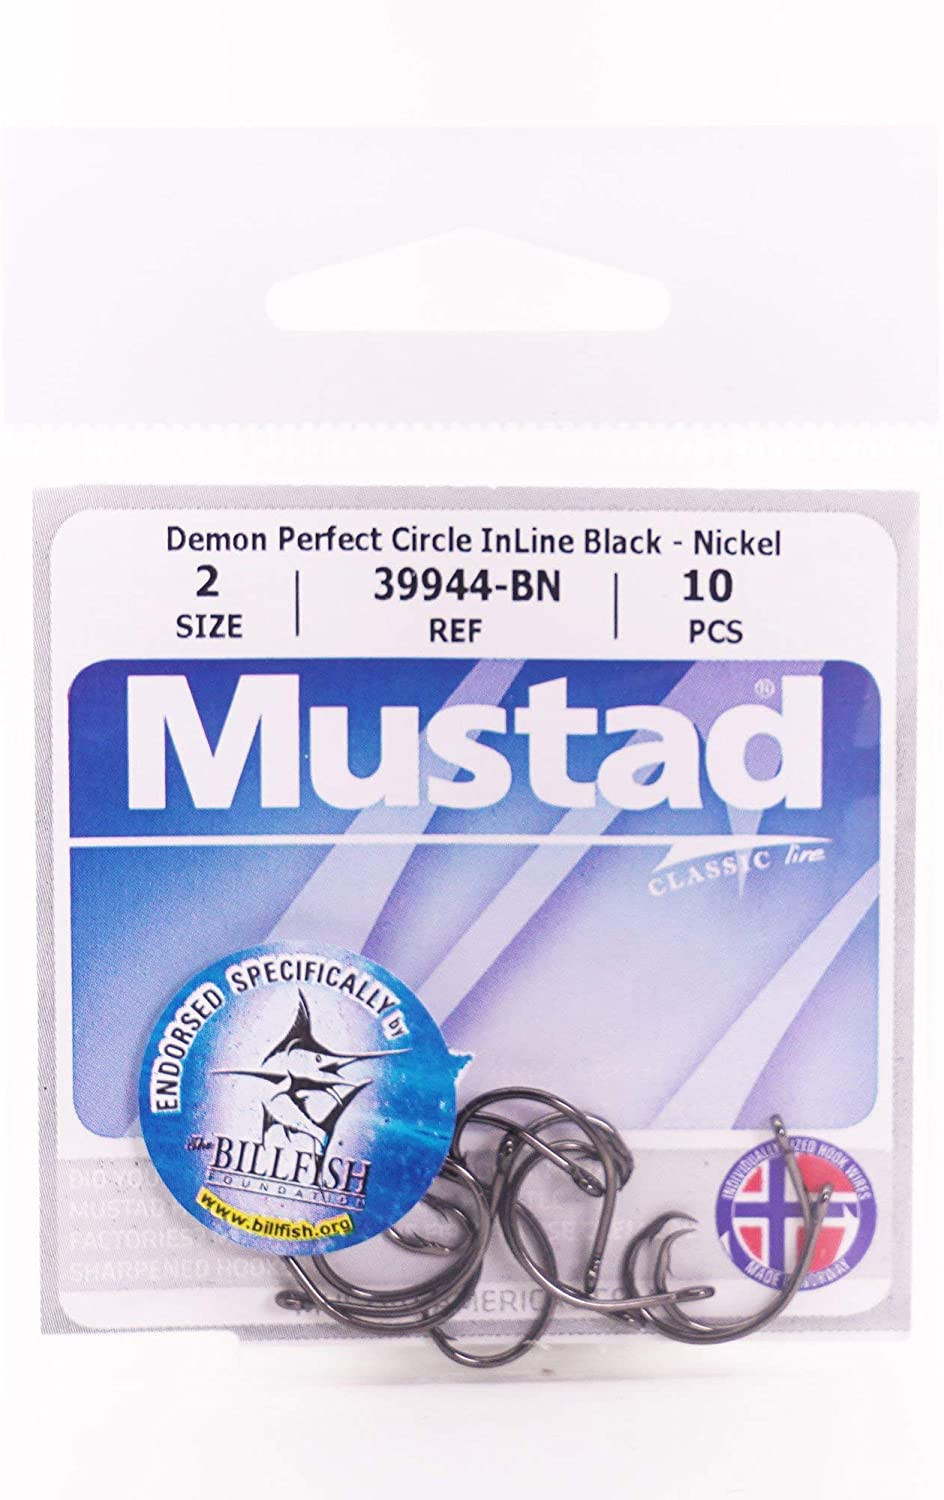 Mustad 3944-BN Demon perfect circle inline